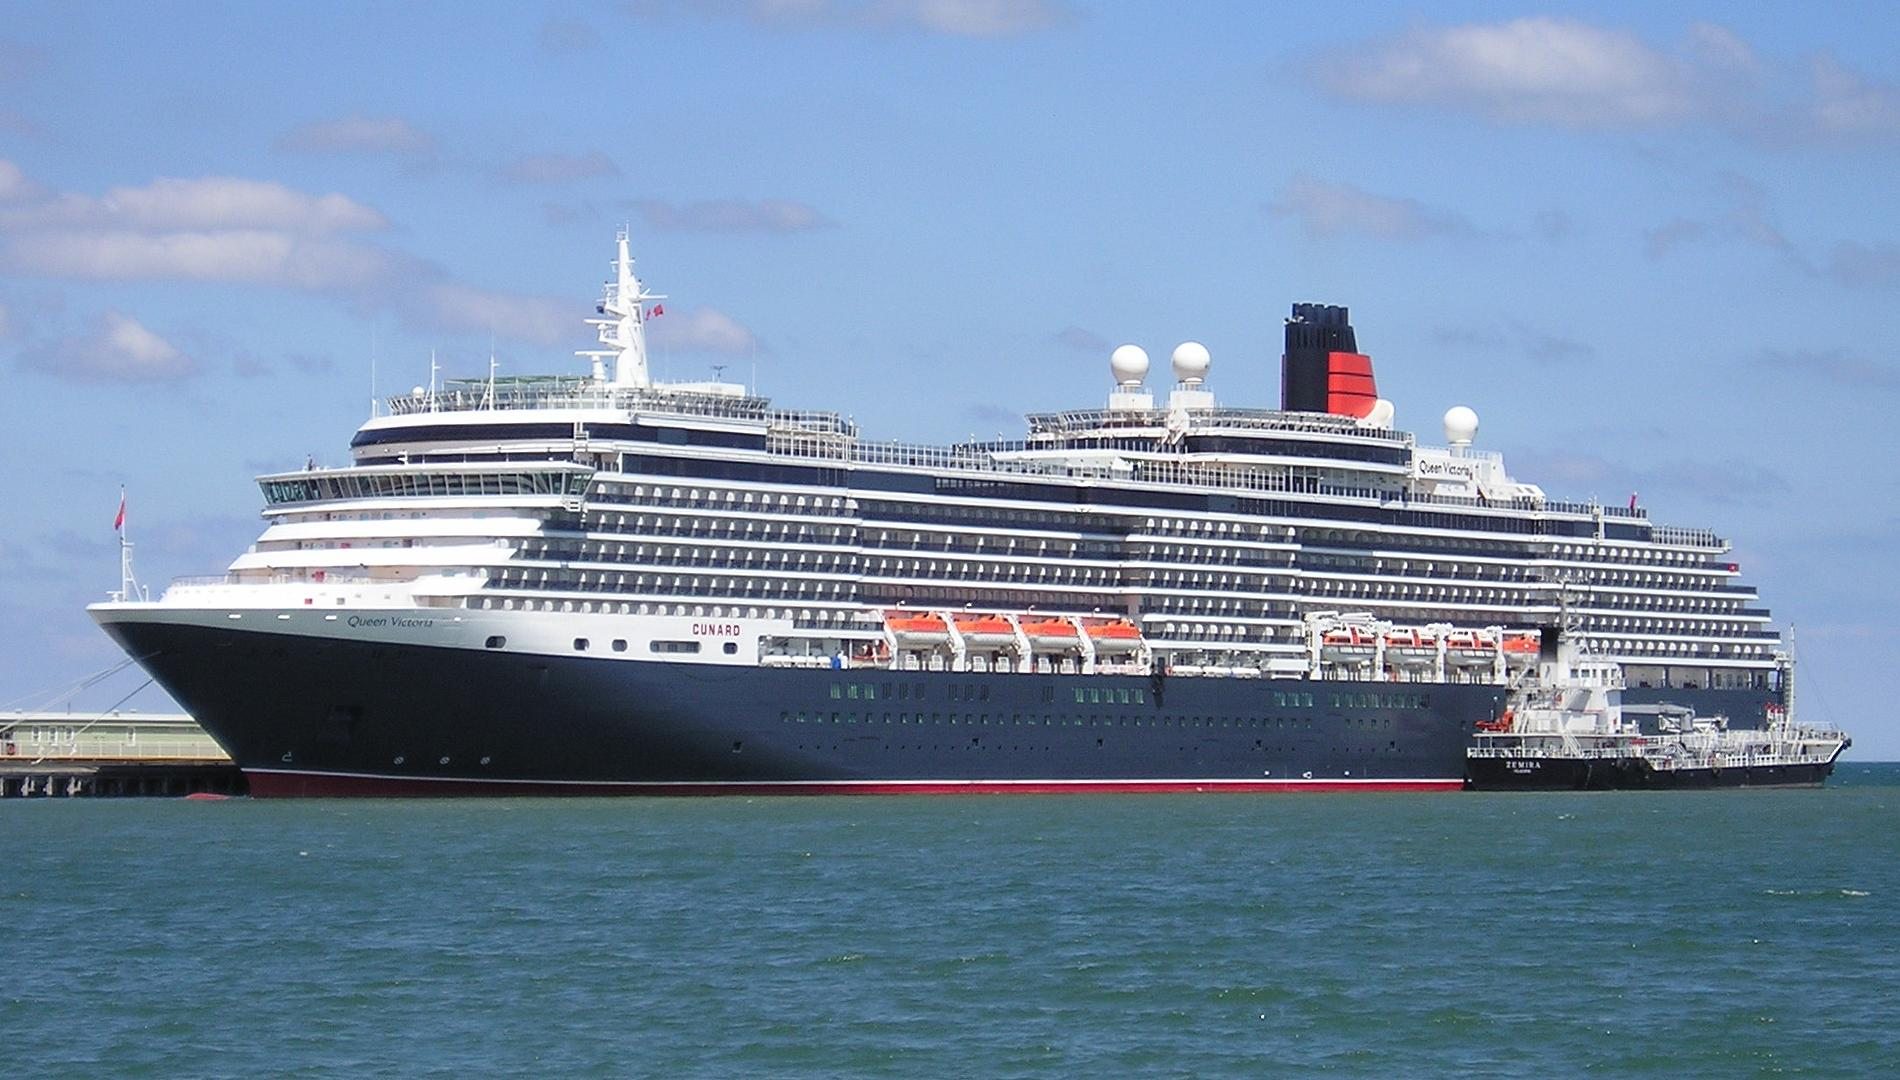 MS Queen Victoria - Wikipedia